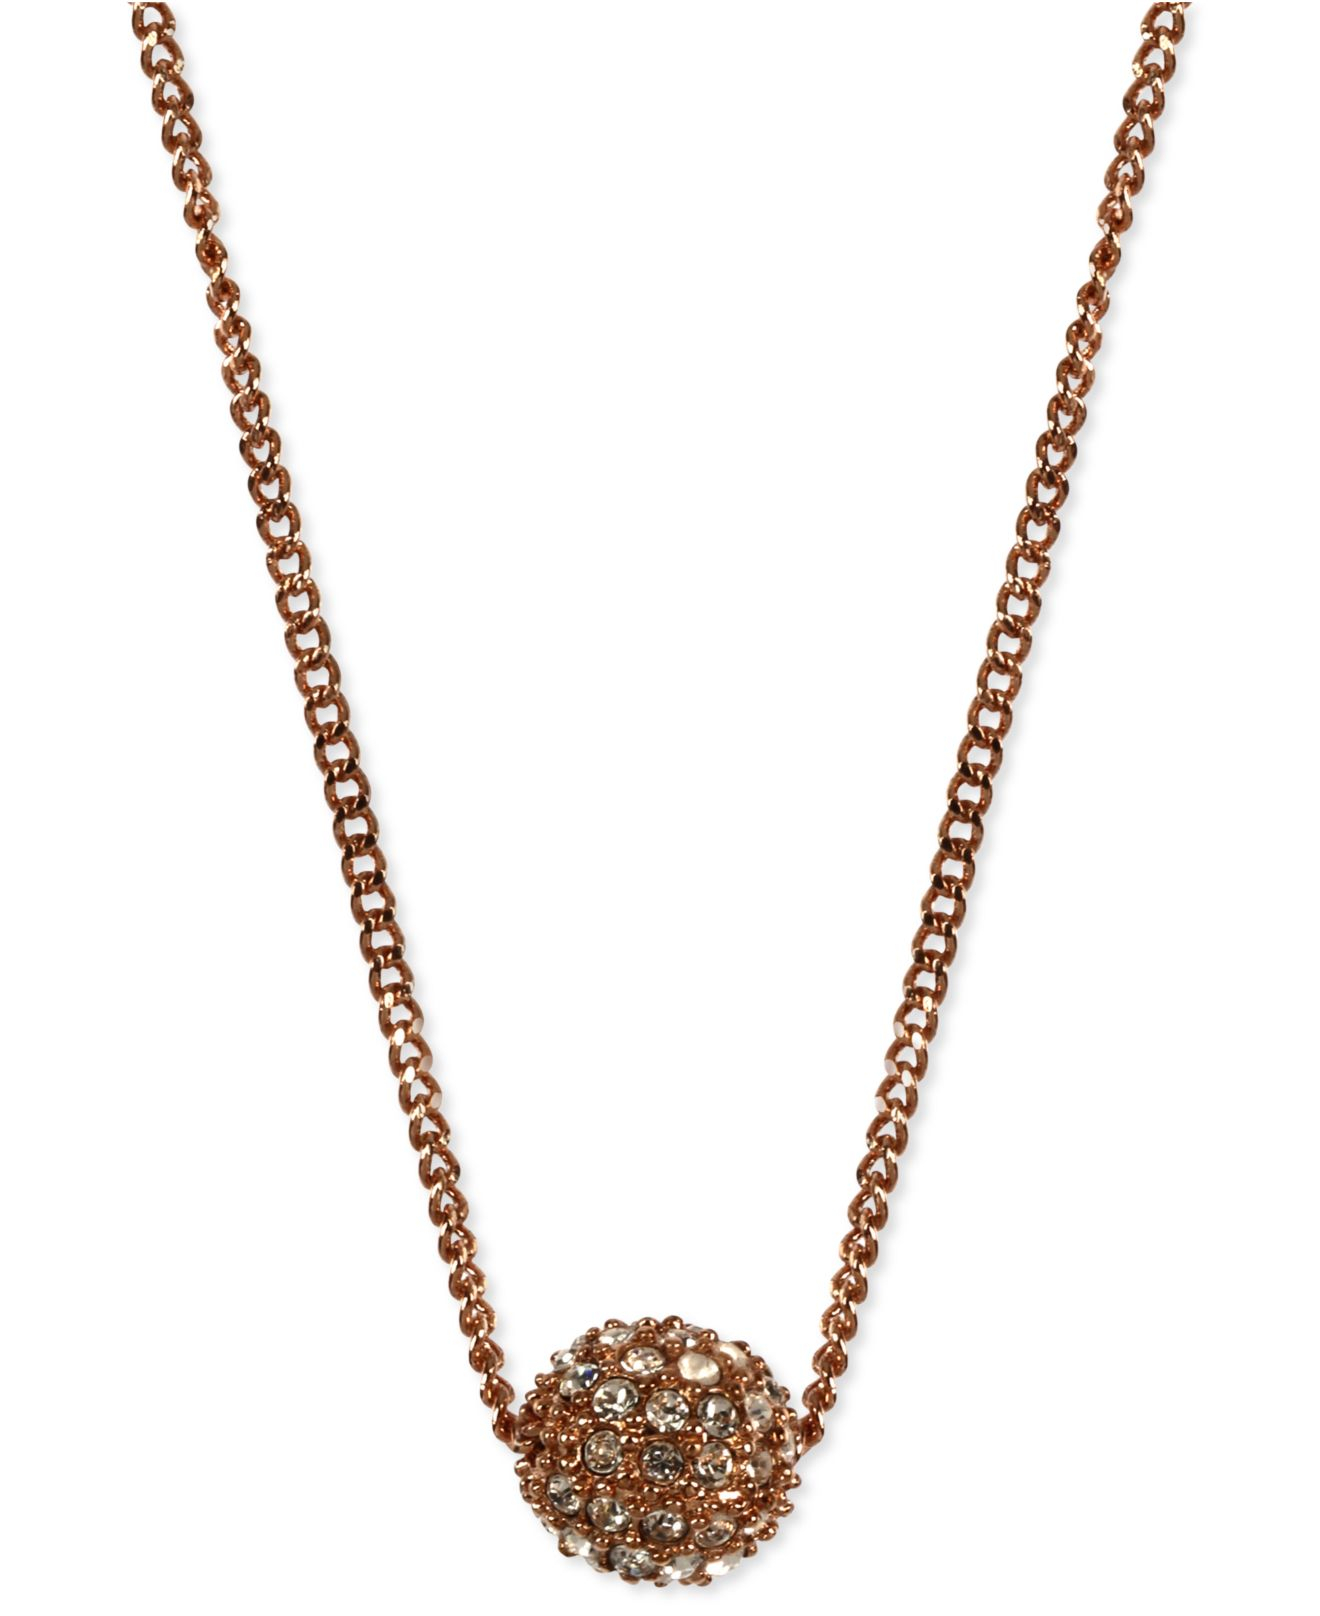 Givenchy Necklace Rose Gold Tone Crystal Fireball Pendant